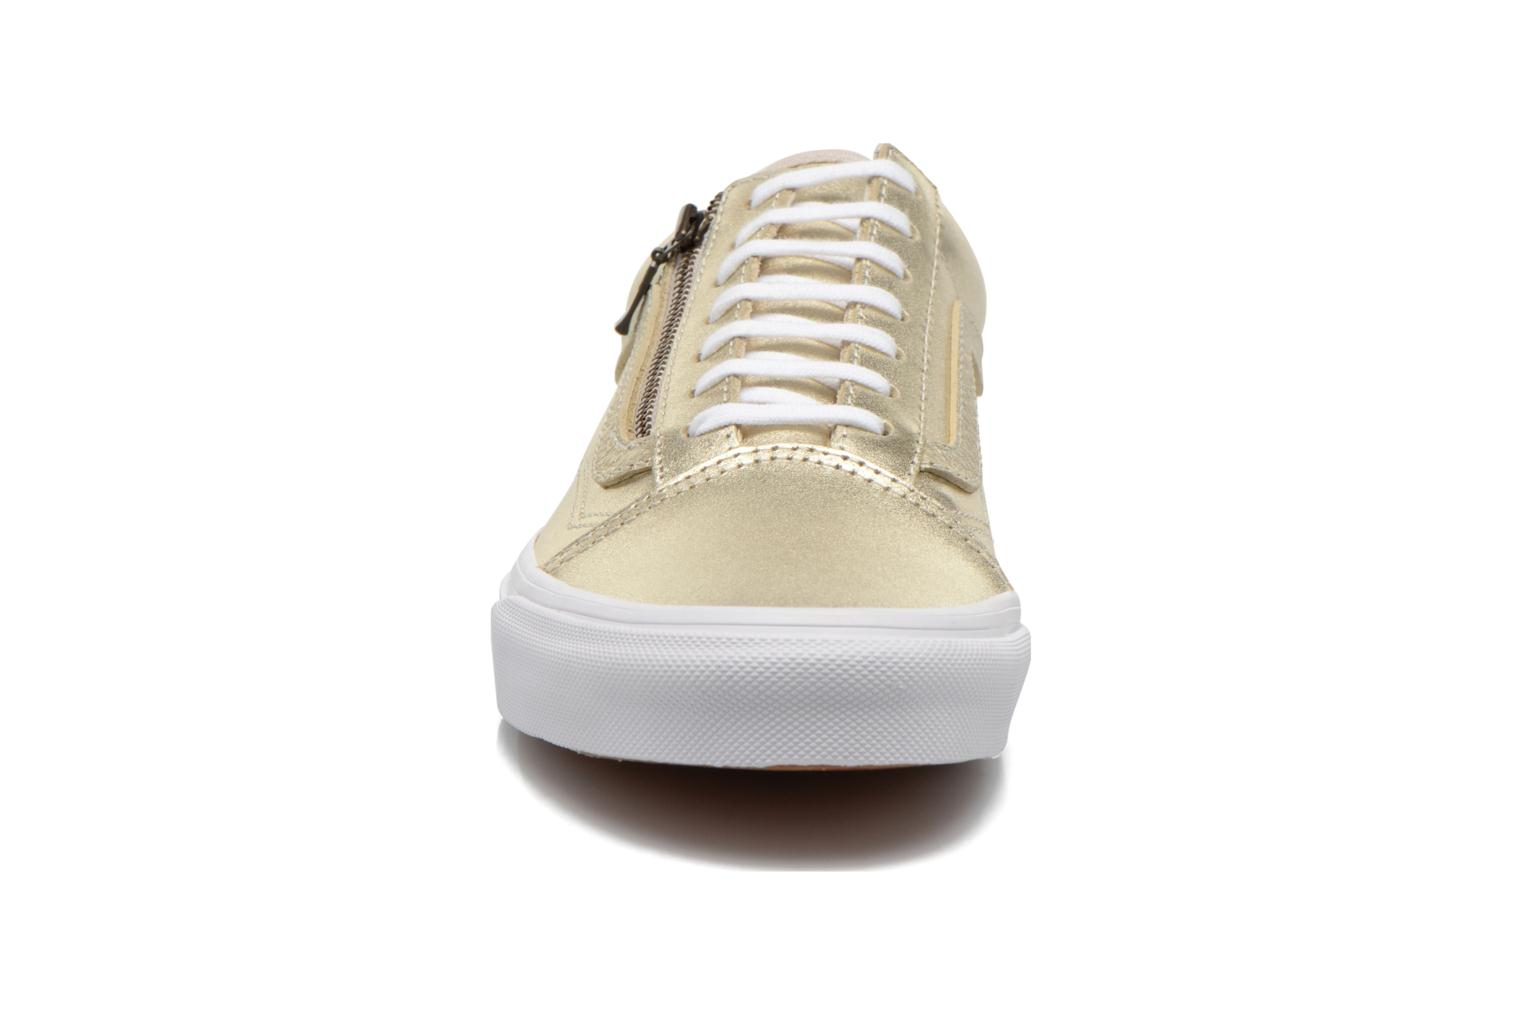 Old Skool Zip (Metallic Leather) wheat gold/true white